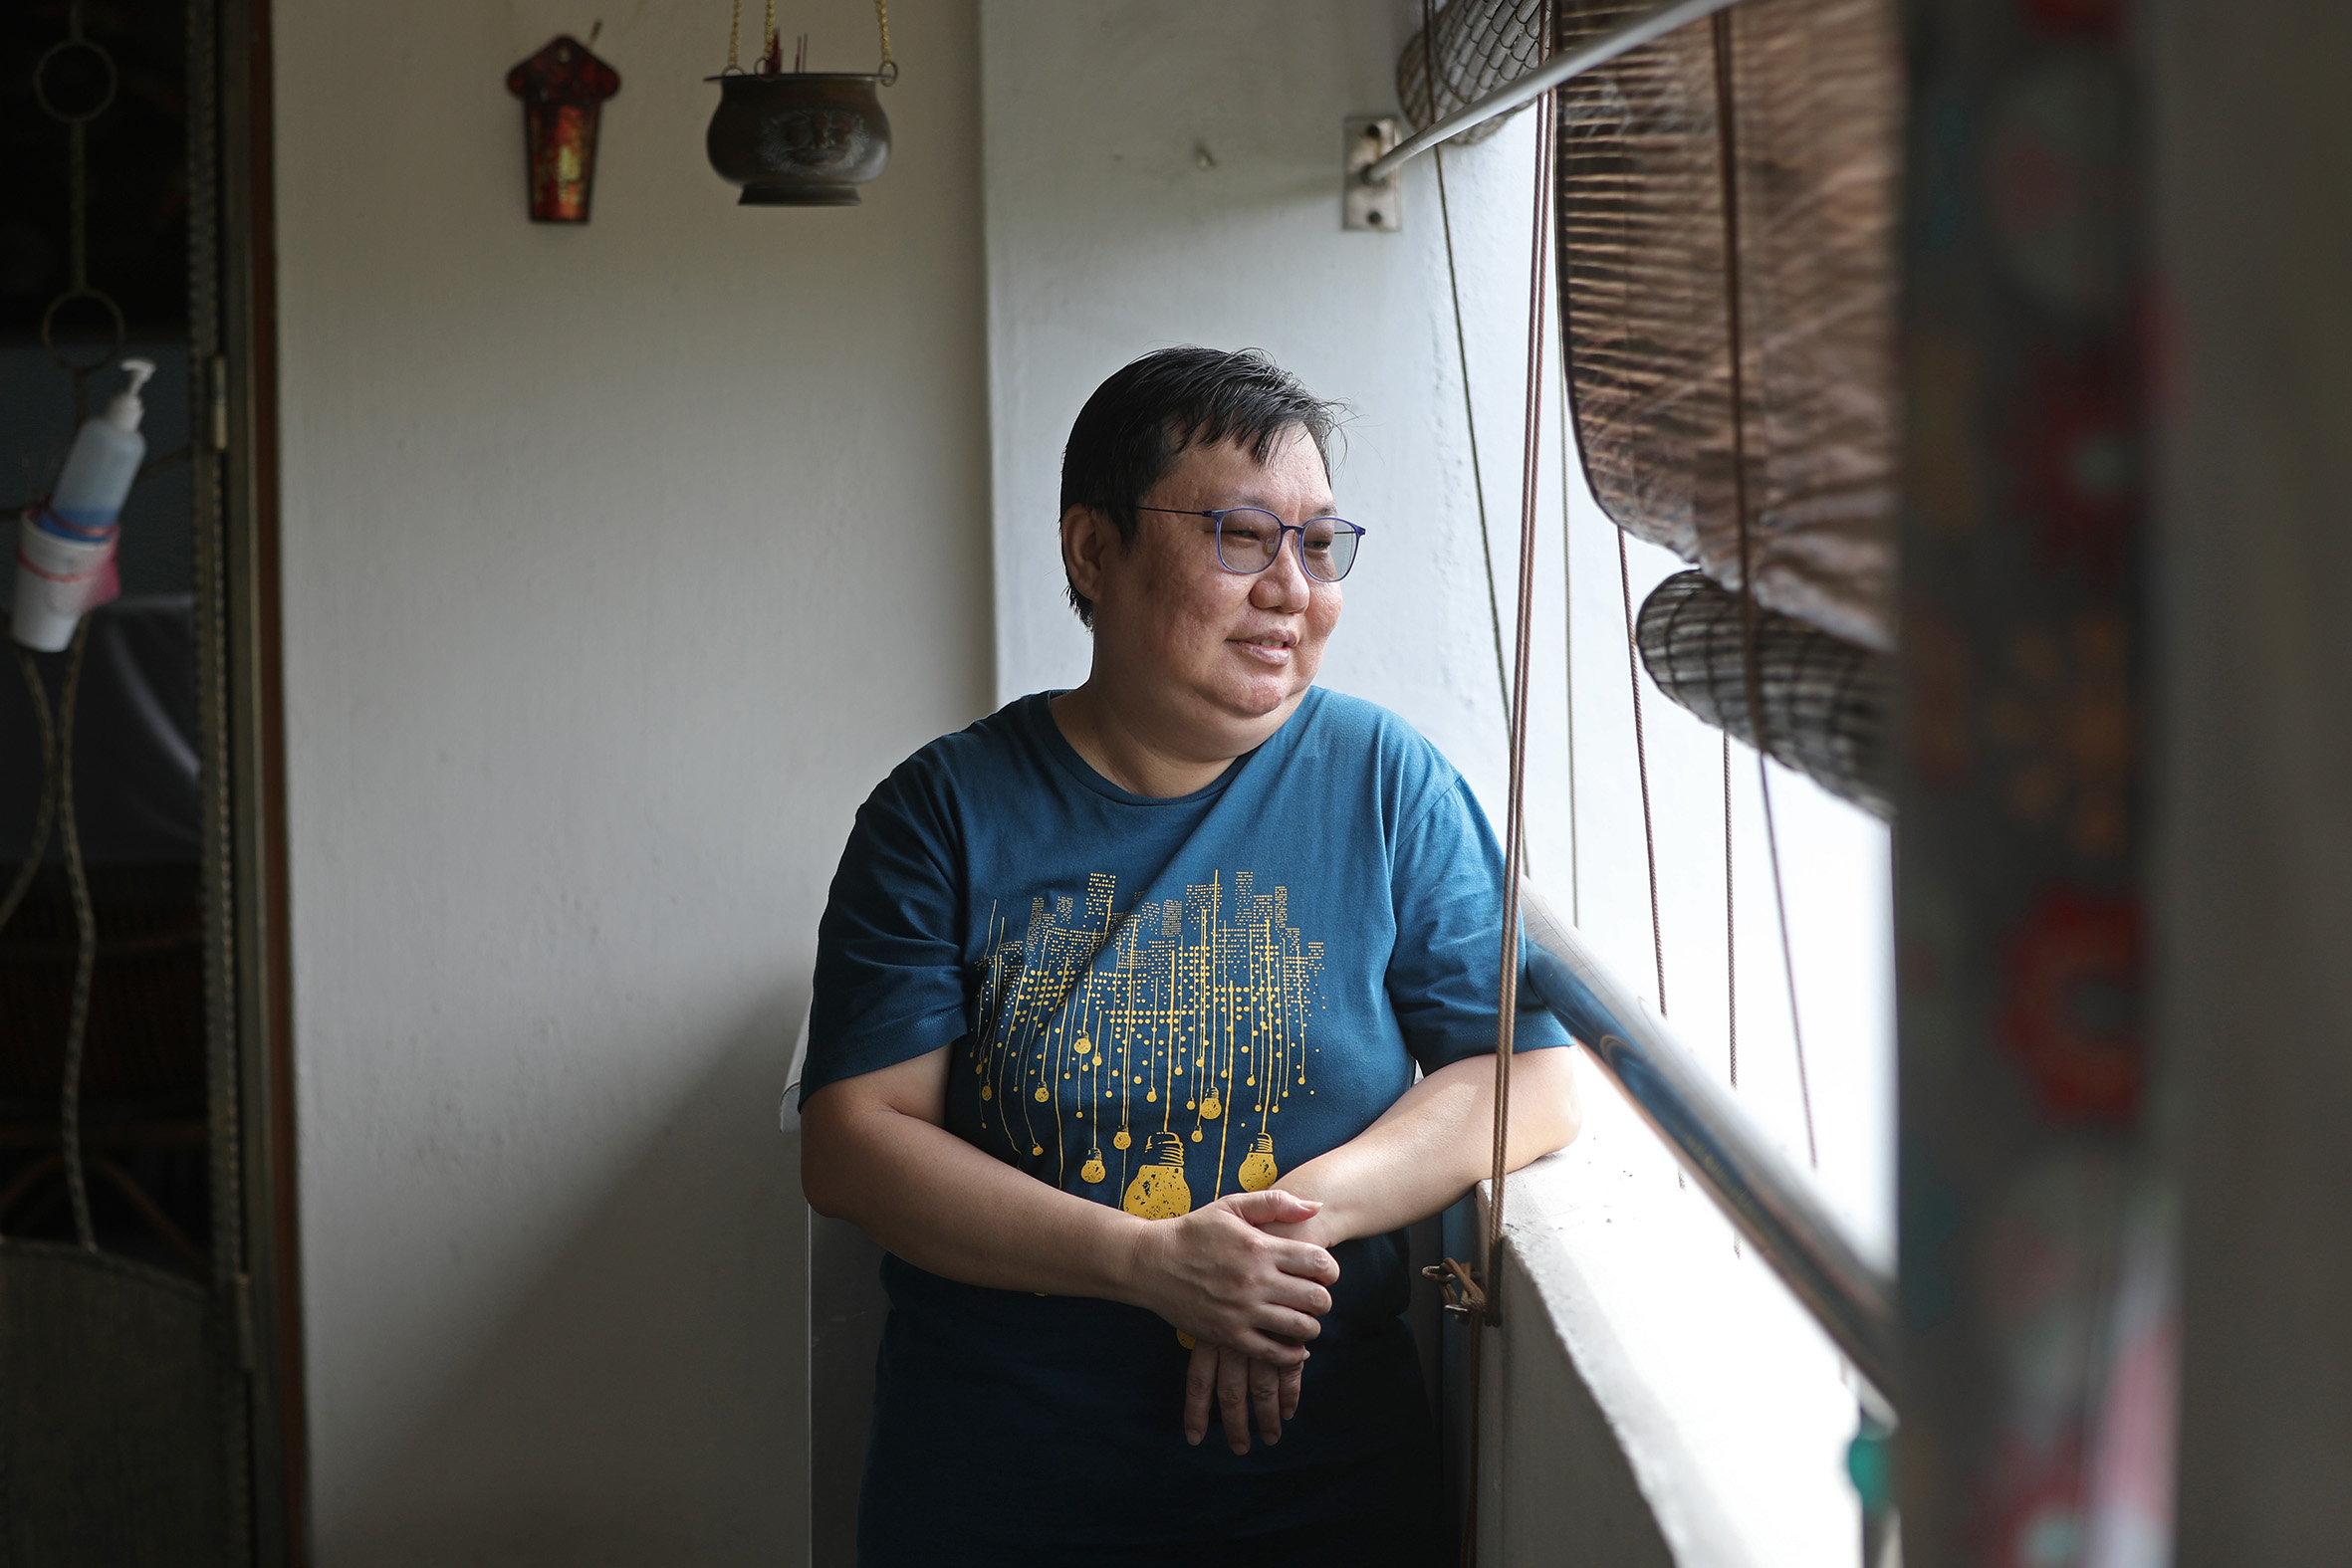 Ms Jasmine Chua thought she could strike a balance between caring for her 84-year-old dementia-stricken mother and working part-time as a clinic assistant, even though she was often running low on sleep as the elderly woman kept waking her up at night to